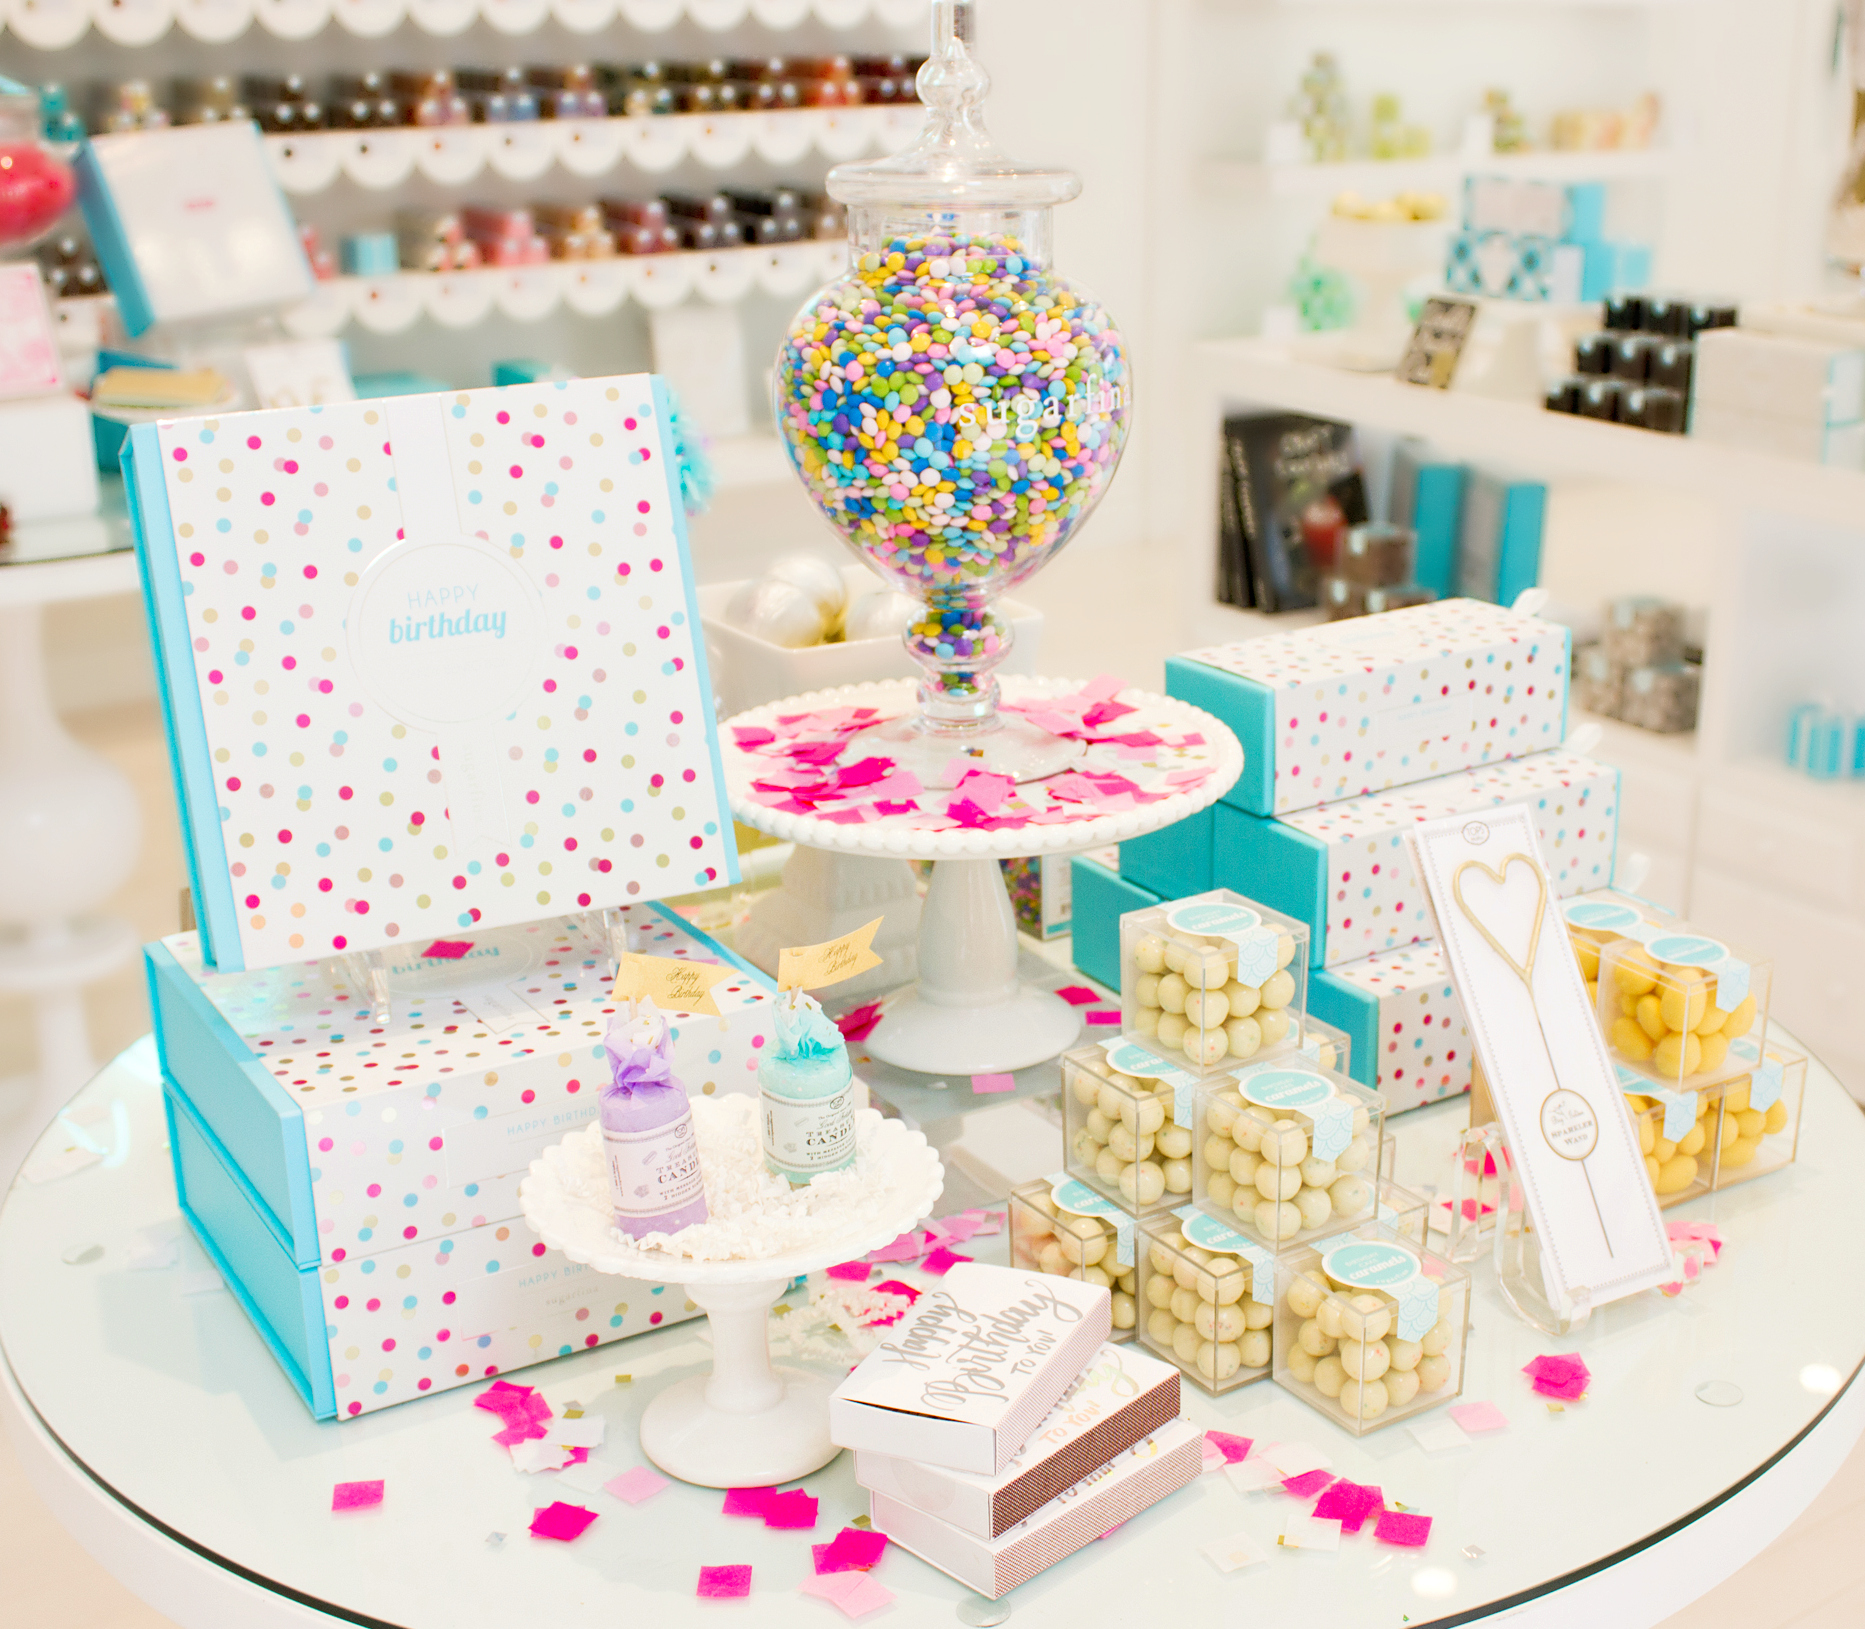 Sugarfina-birthday